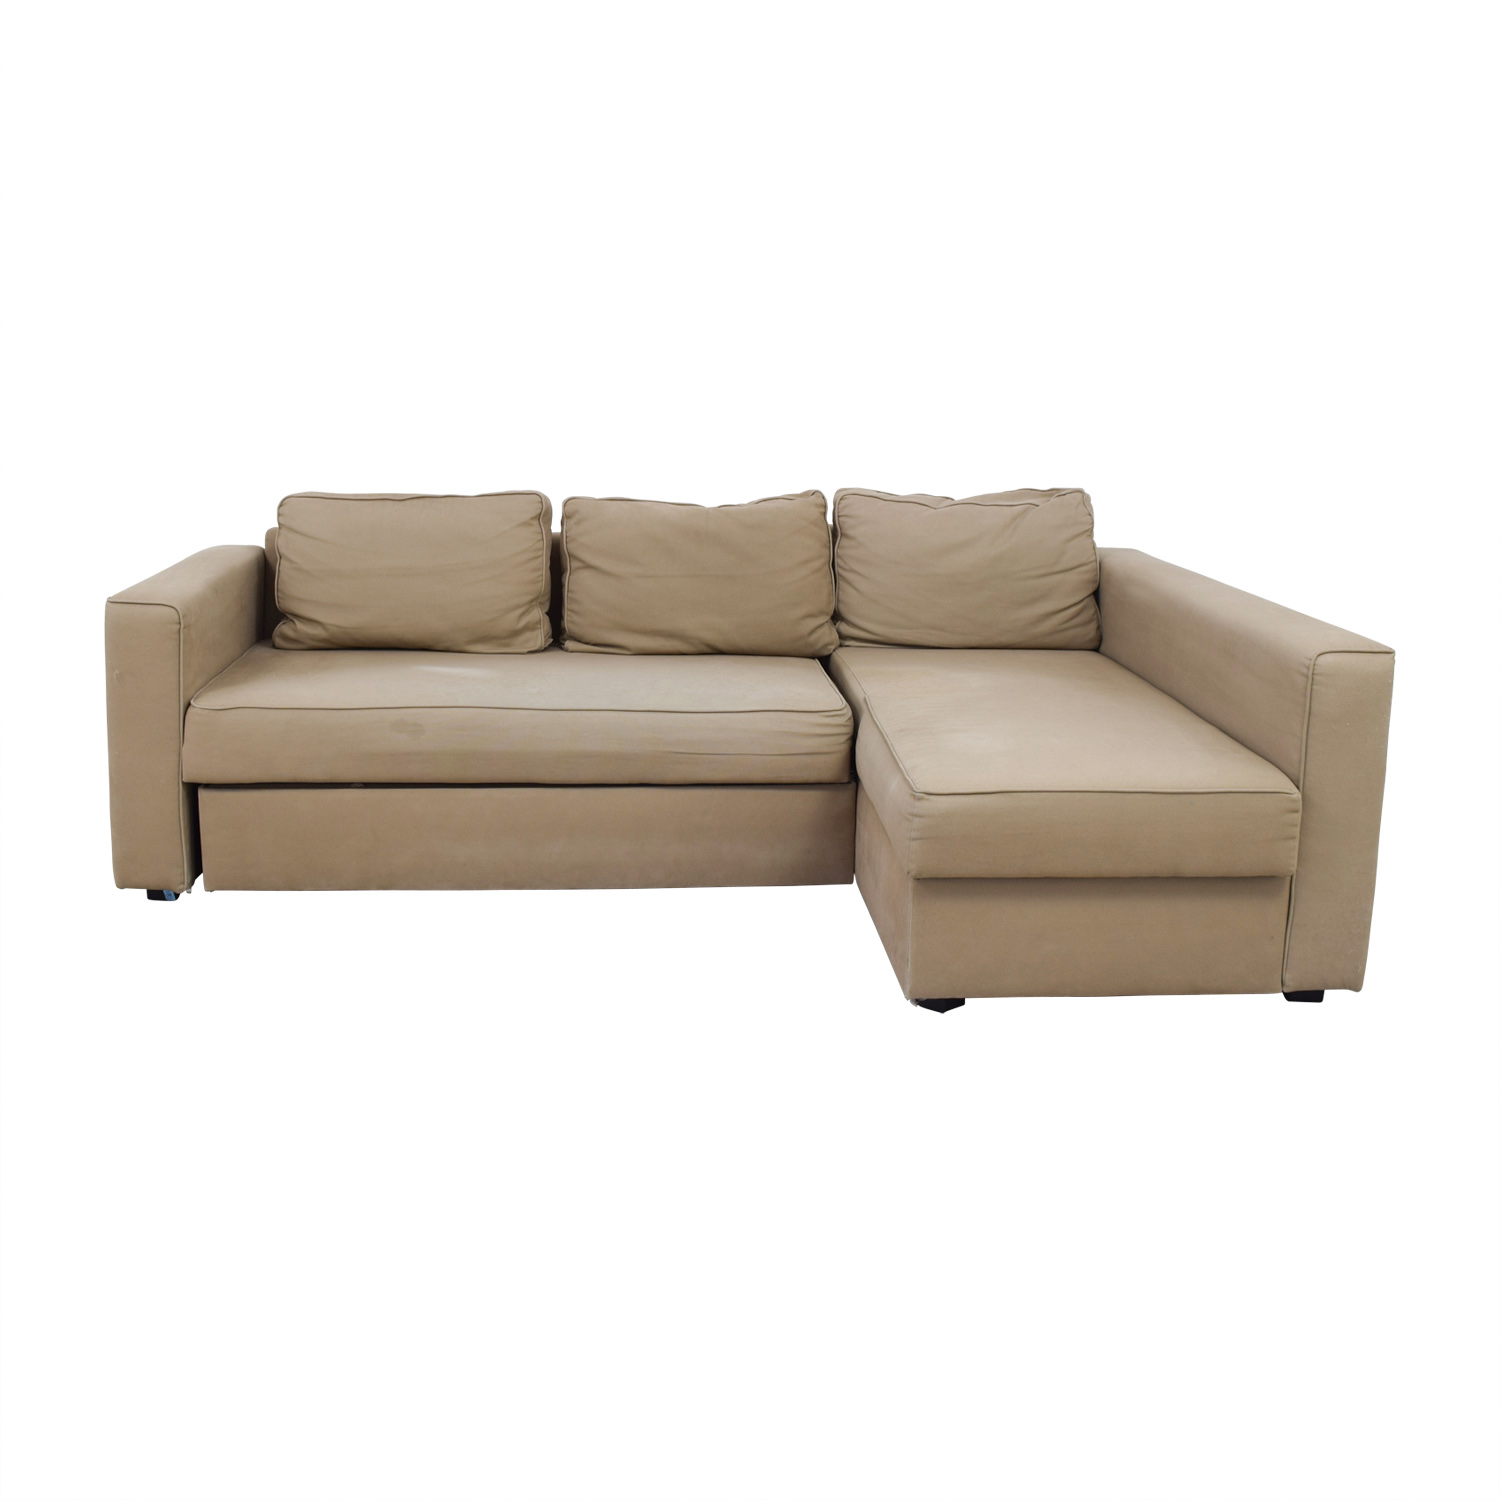 Buy Sofa Bed Online 62 Off Ikea Ikea Manstad Sectional Sofa Bed With Storage Sofas